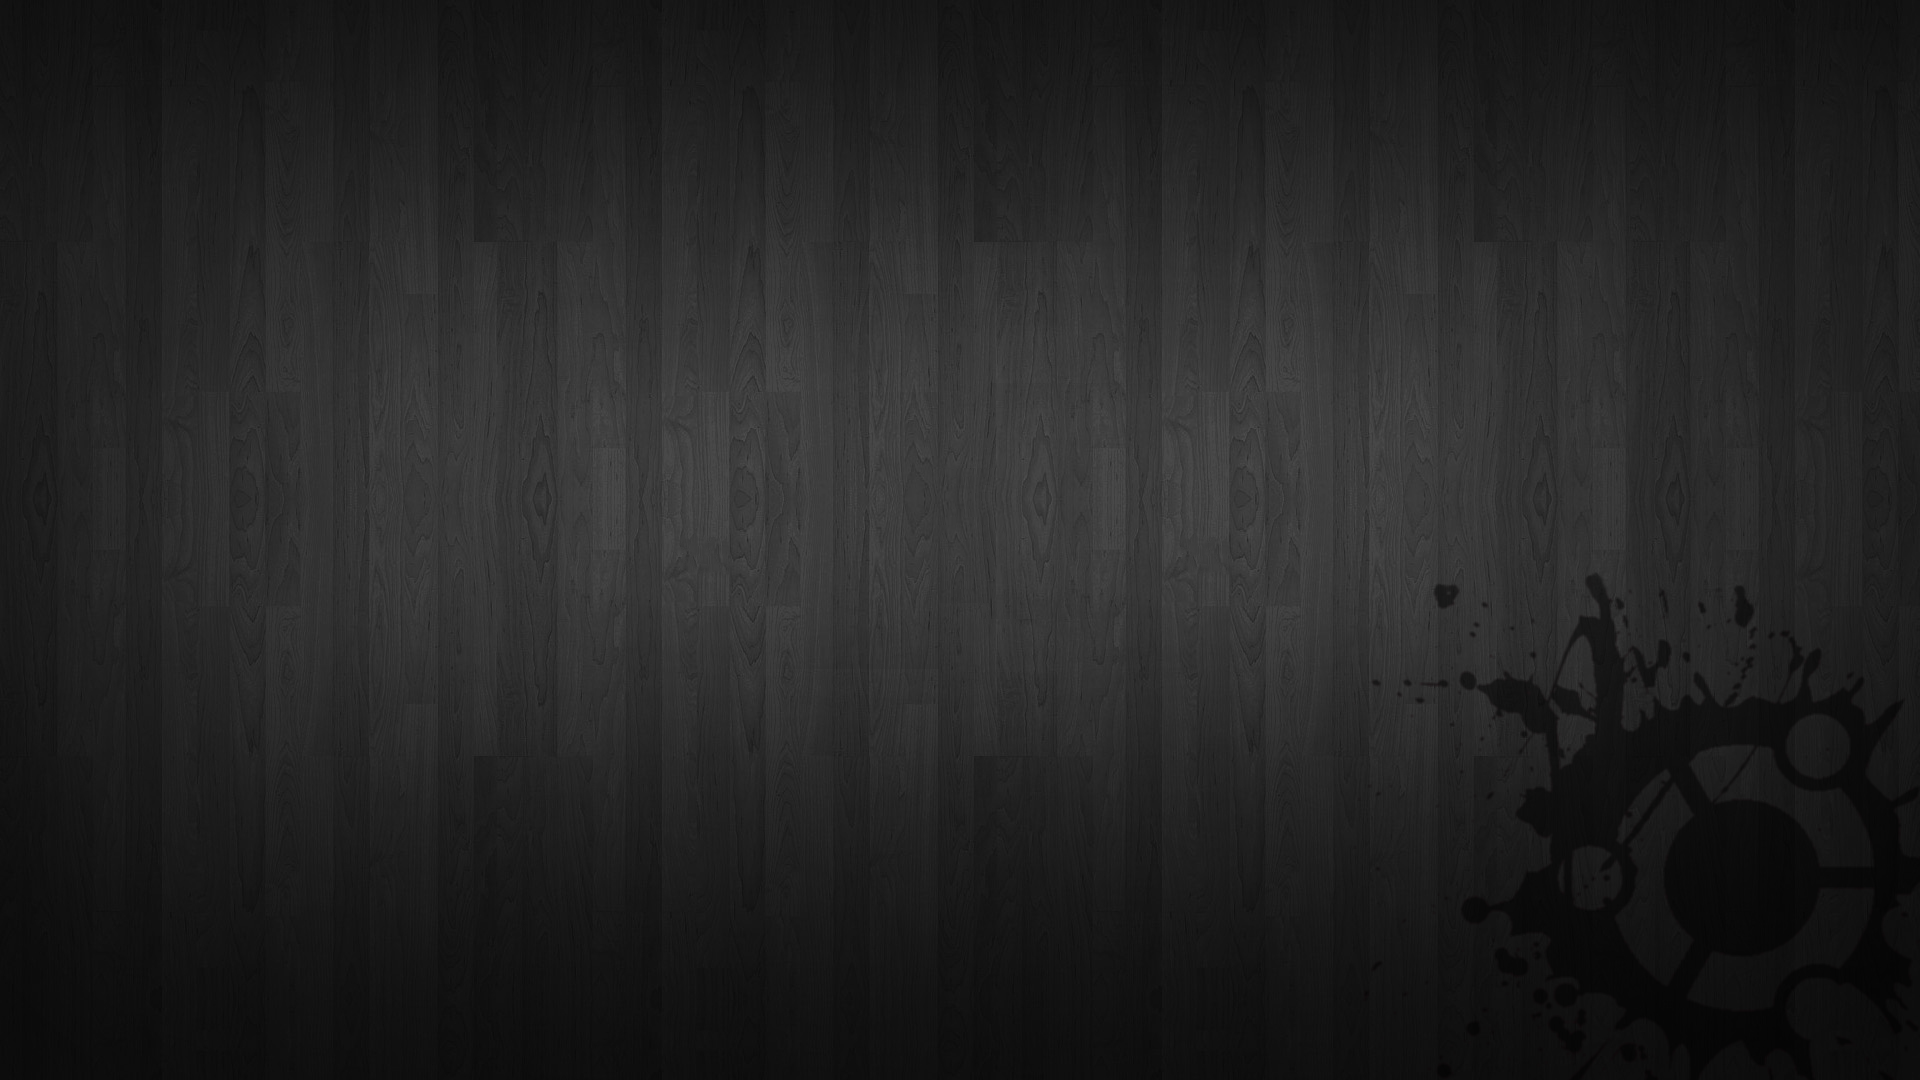 Wood Wallpaper 1920X1080 wallpaper   627153 1920x1080